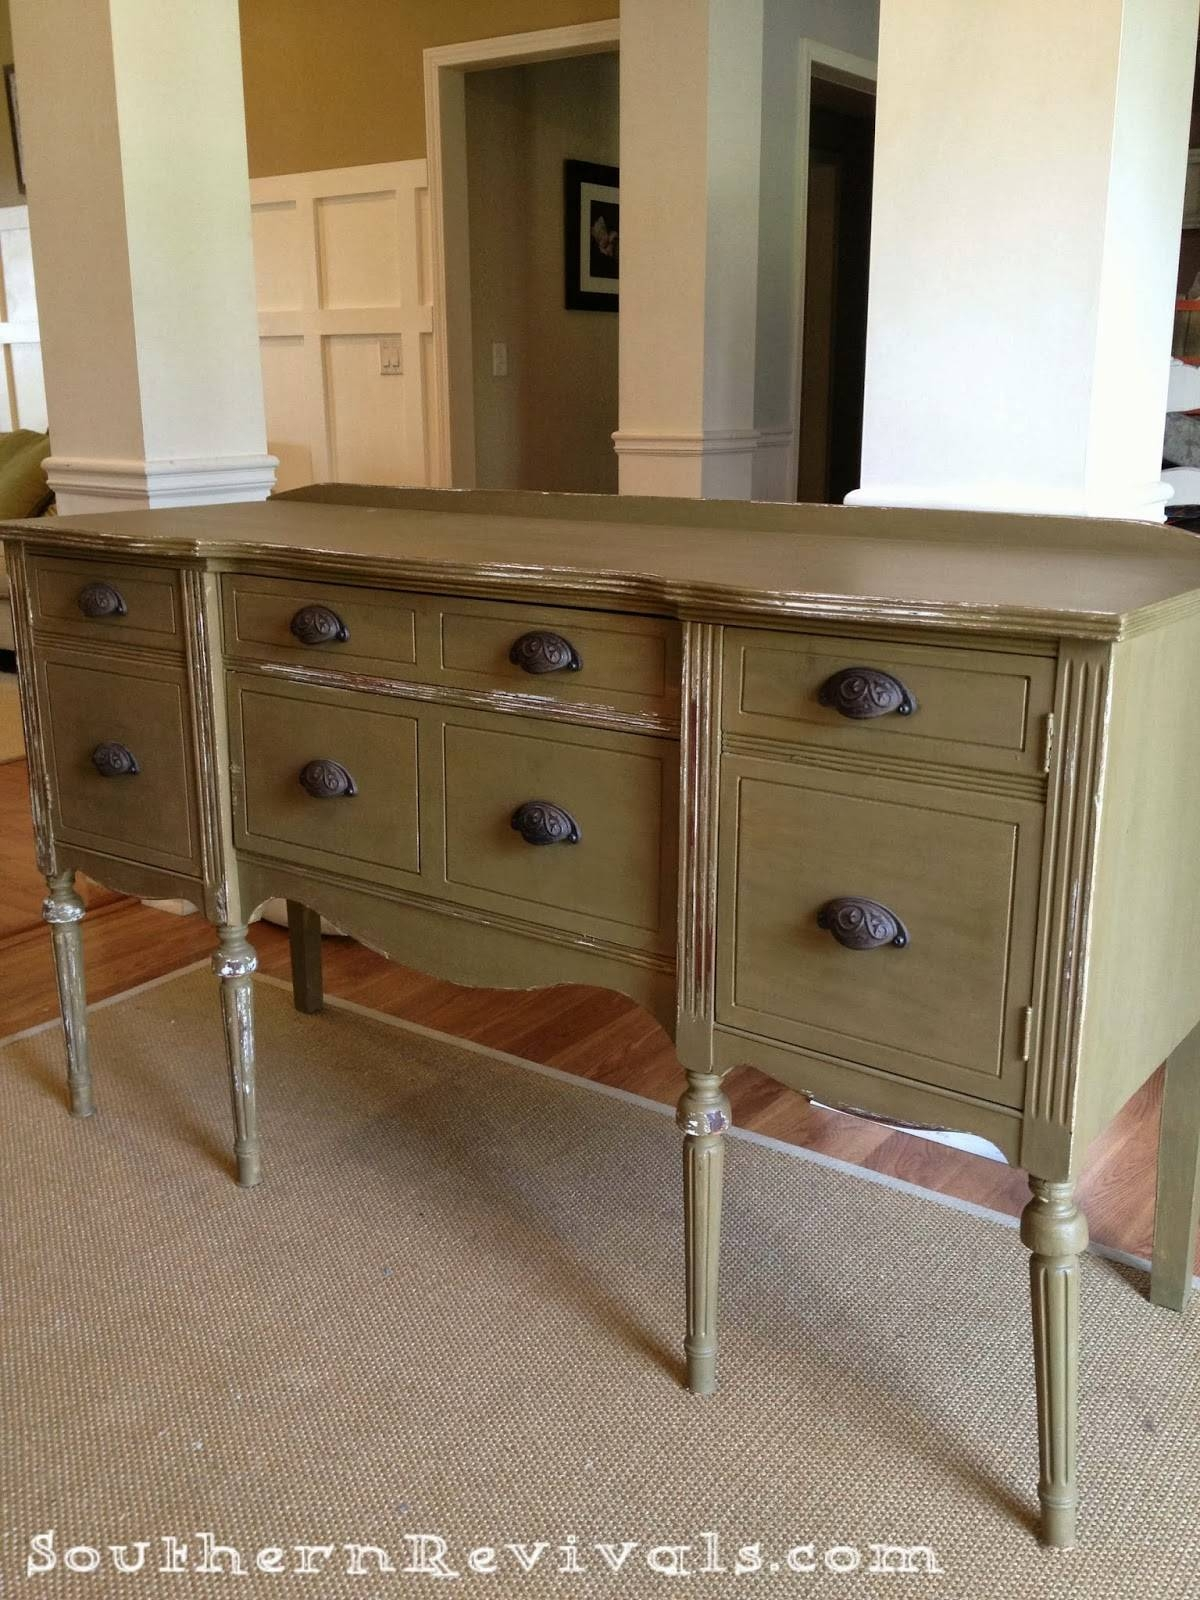 Inspiration about Updating A Vintage Sideboard Buffet With A Pop Of Color – Southern Within Current Vintage Sideboards And Buffets (#4 of 15)